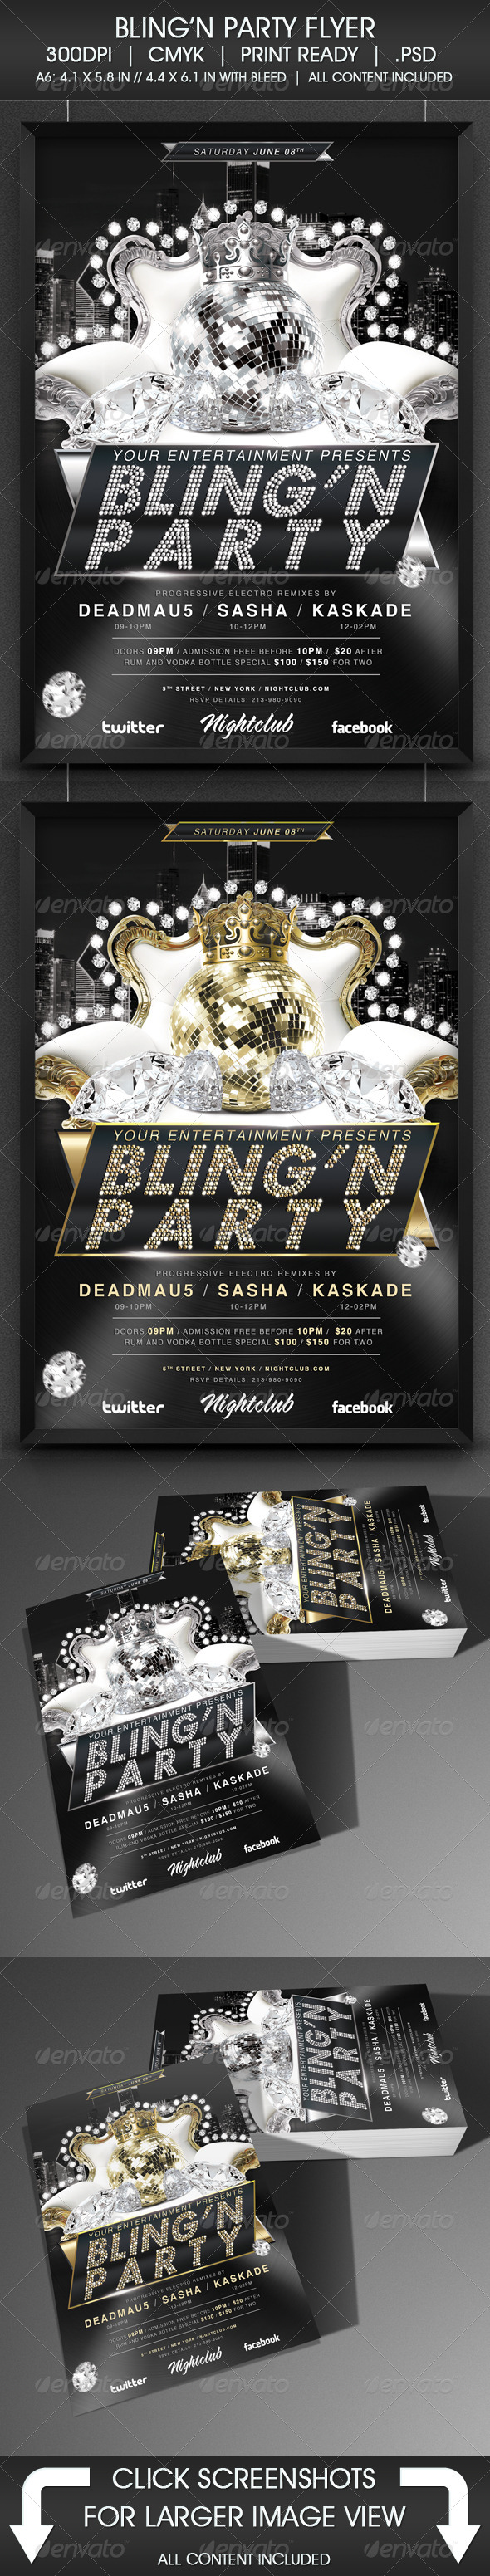 Bling Party Flyer - Events Flyers